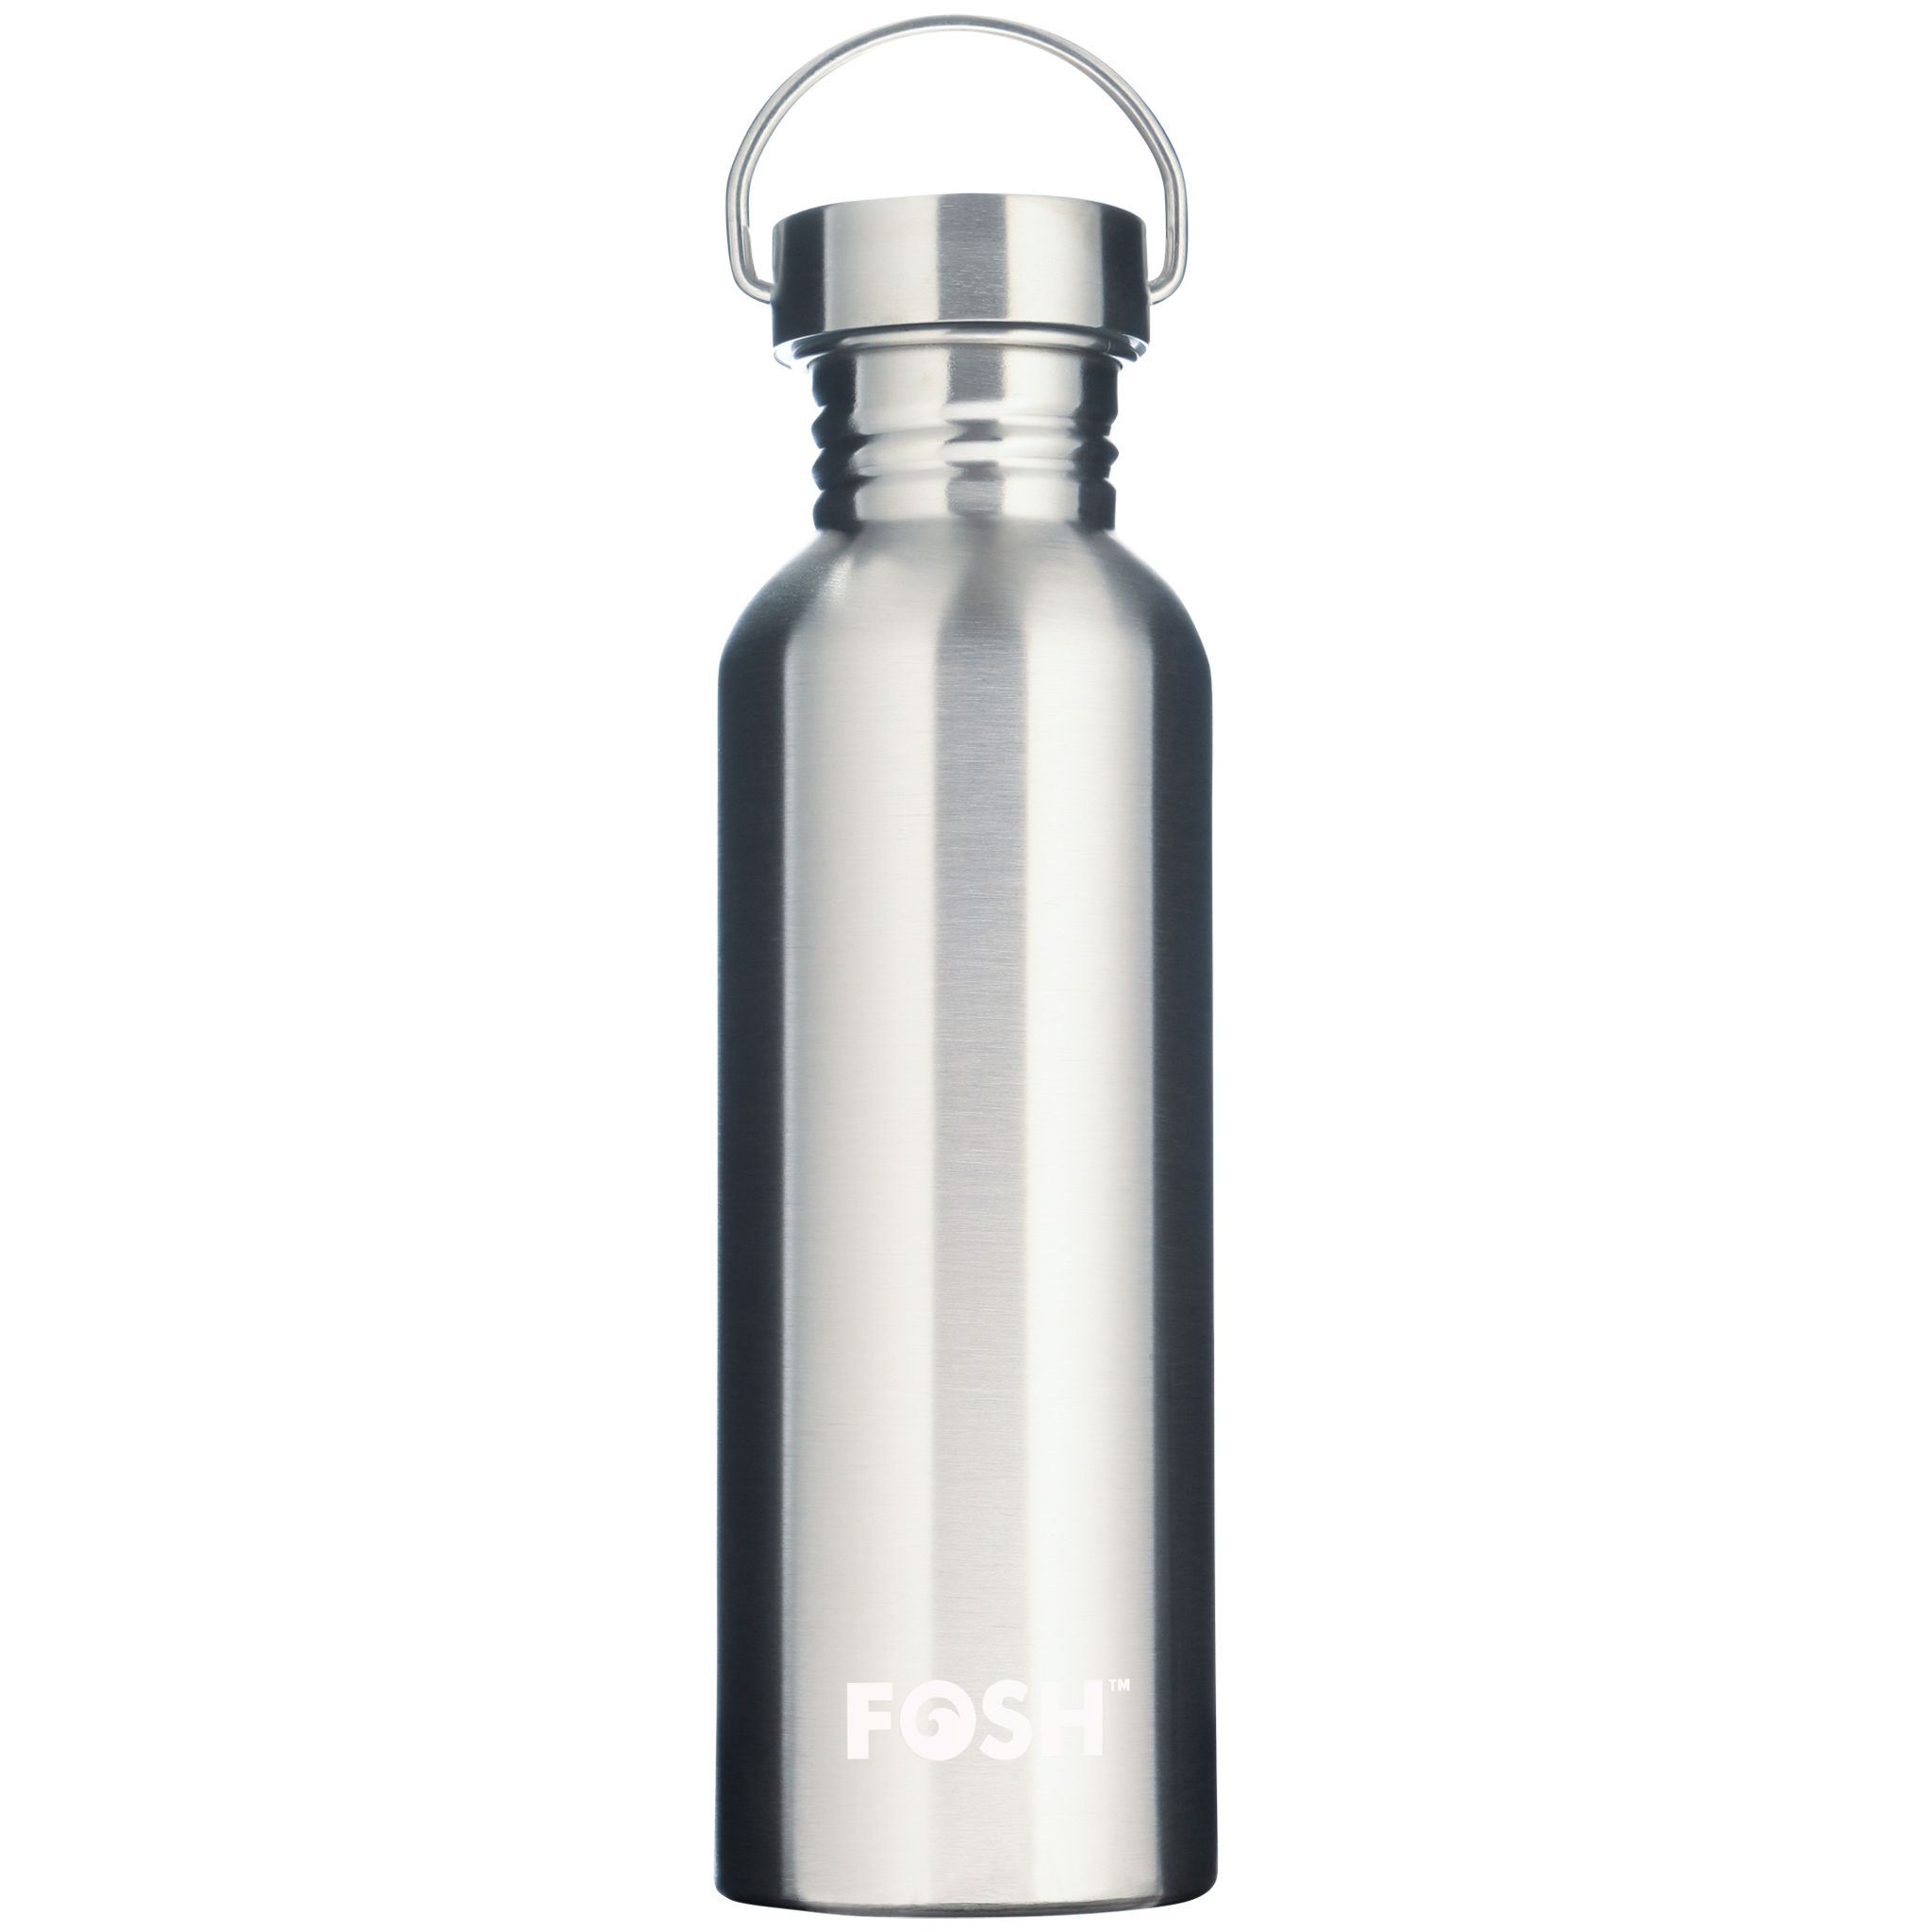 Stainless steel non insulated active water bottle steel